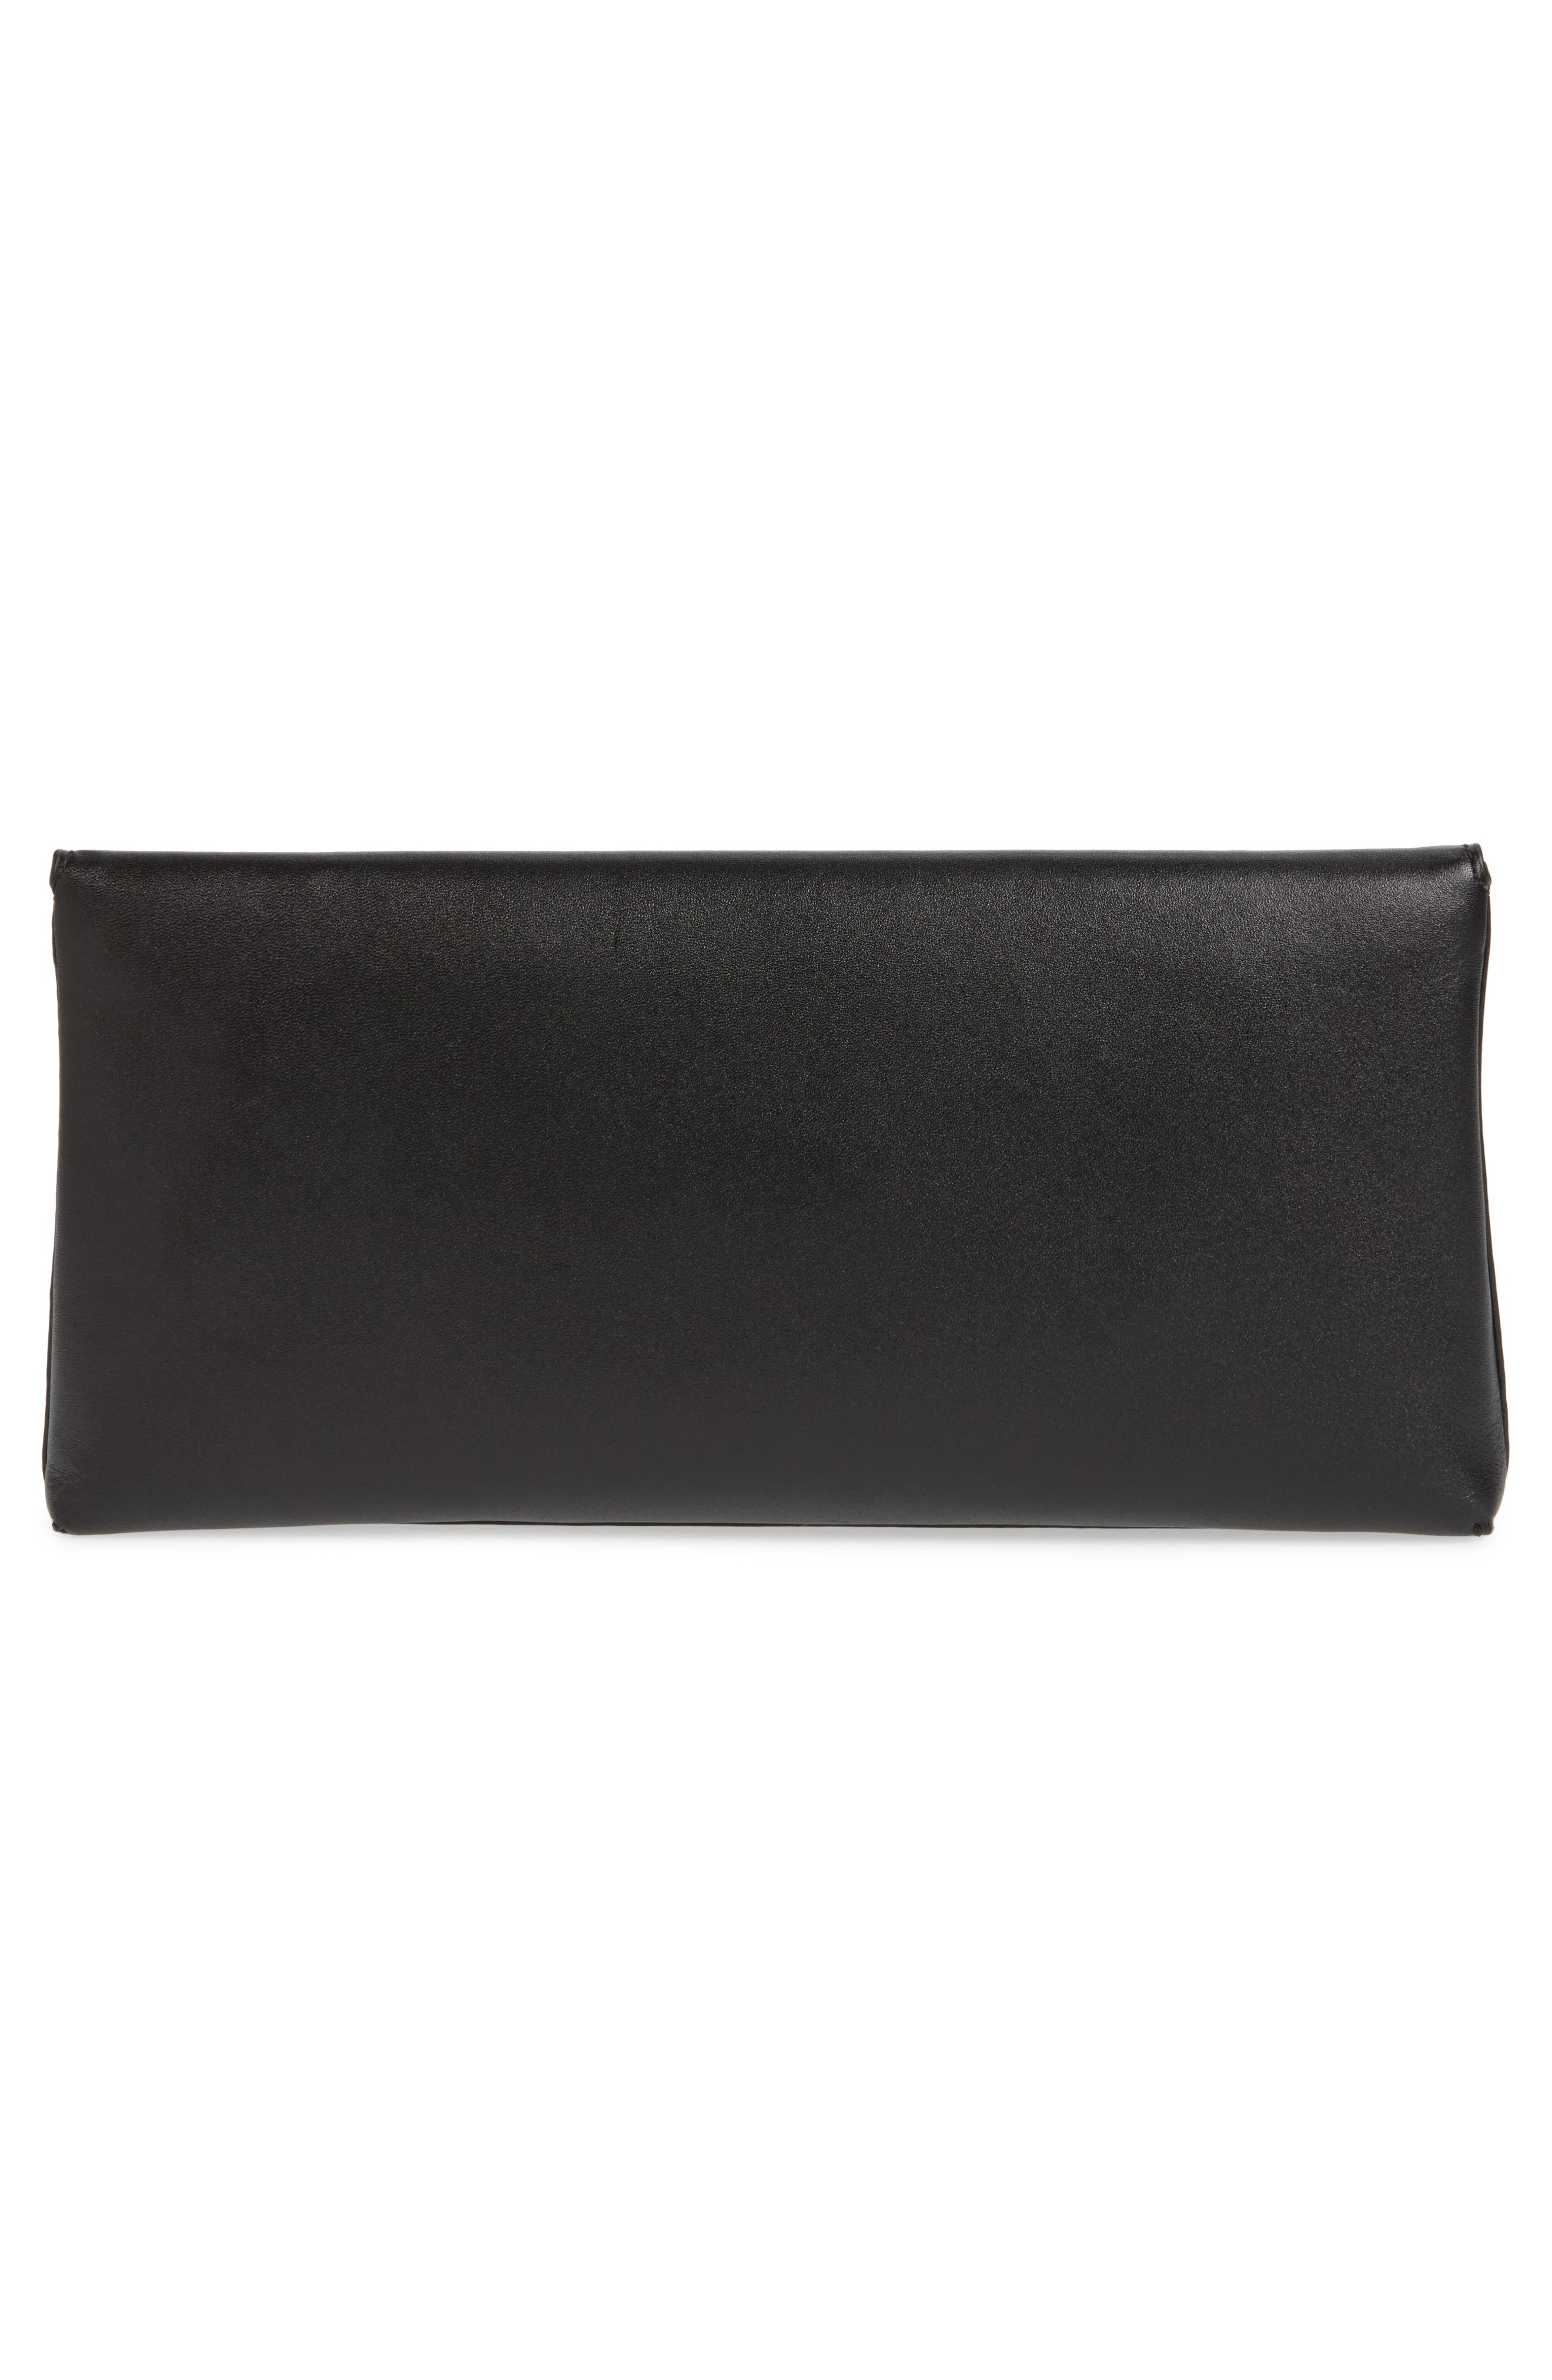 Miller Leather Clutch,                             Alternate thumbnail 7, color,